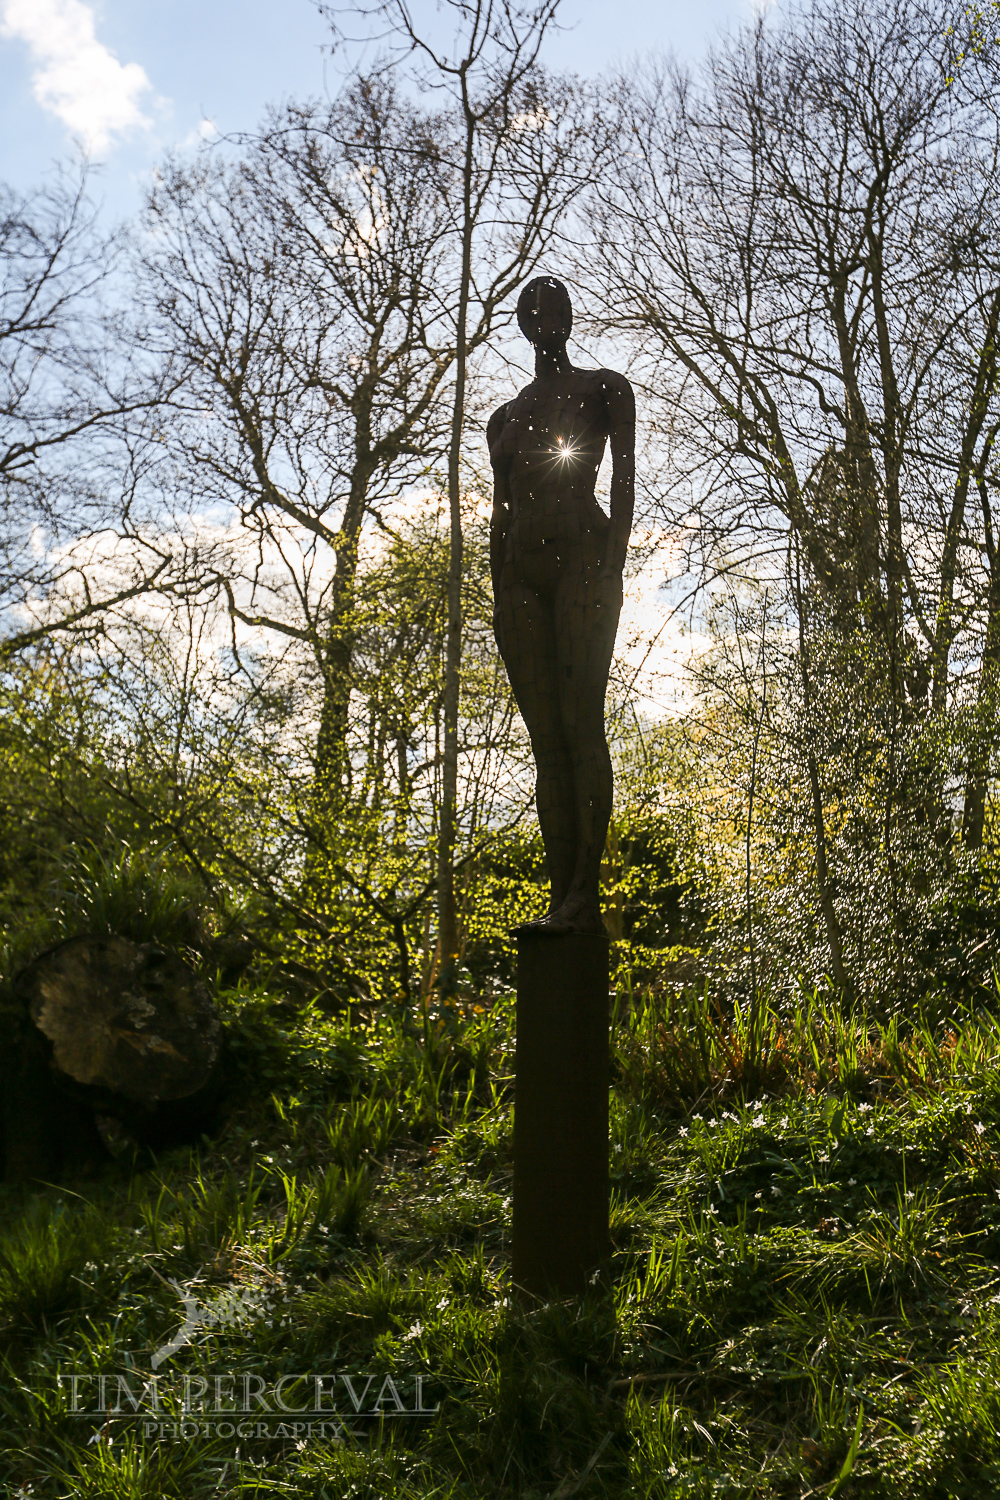 Hannah Peschar Sculpture Garden, Dorking, UK